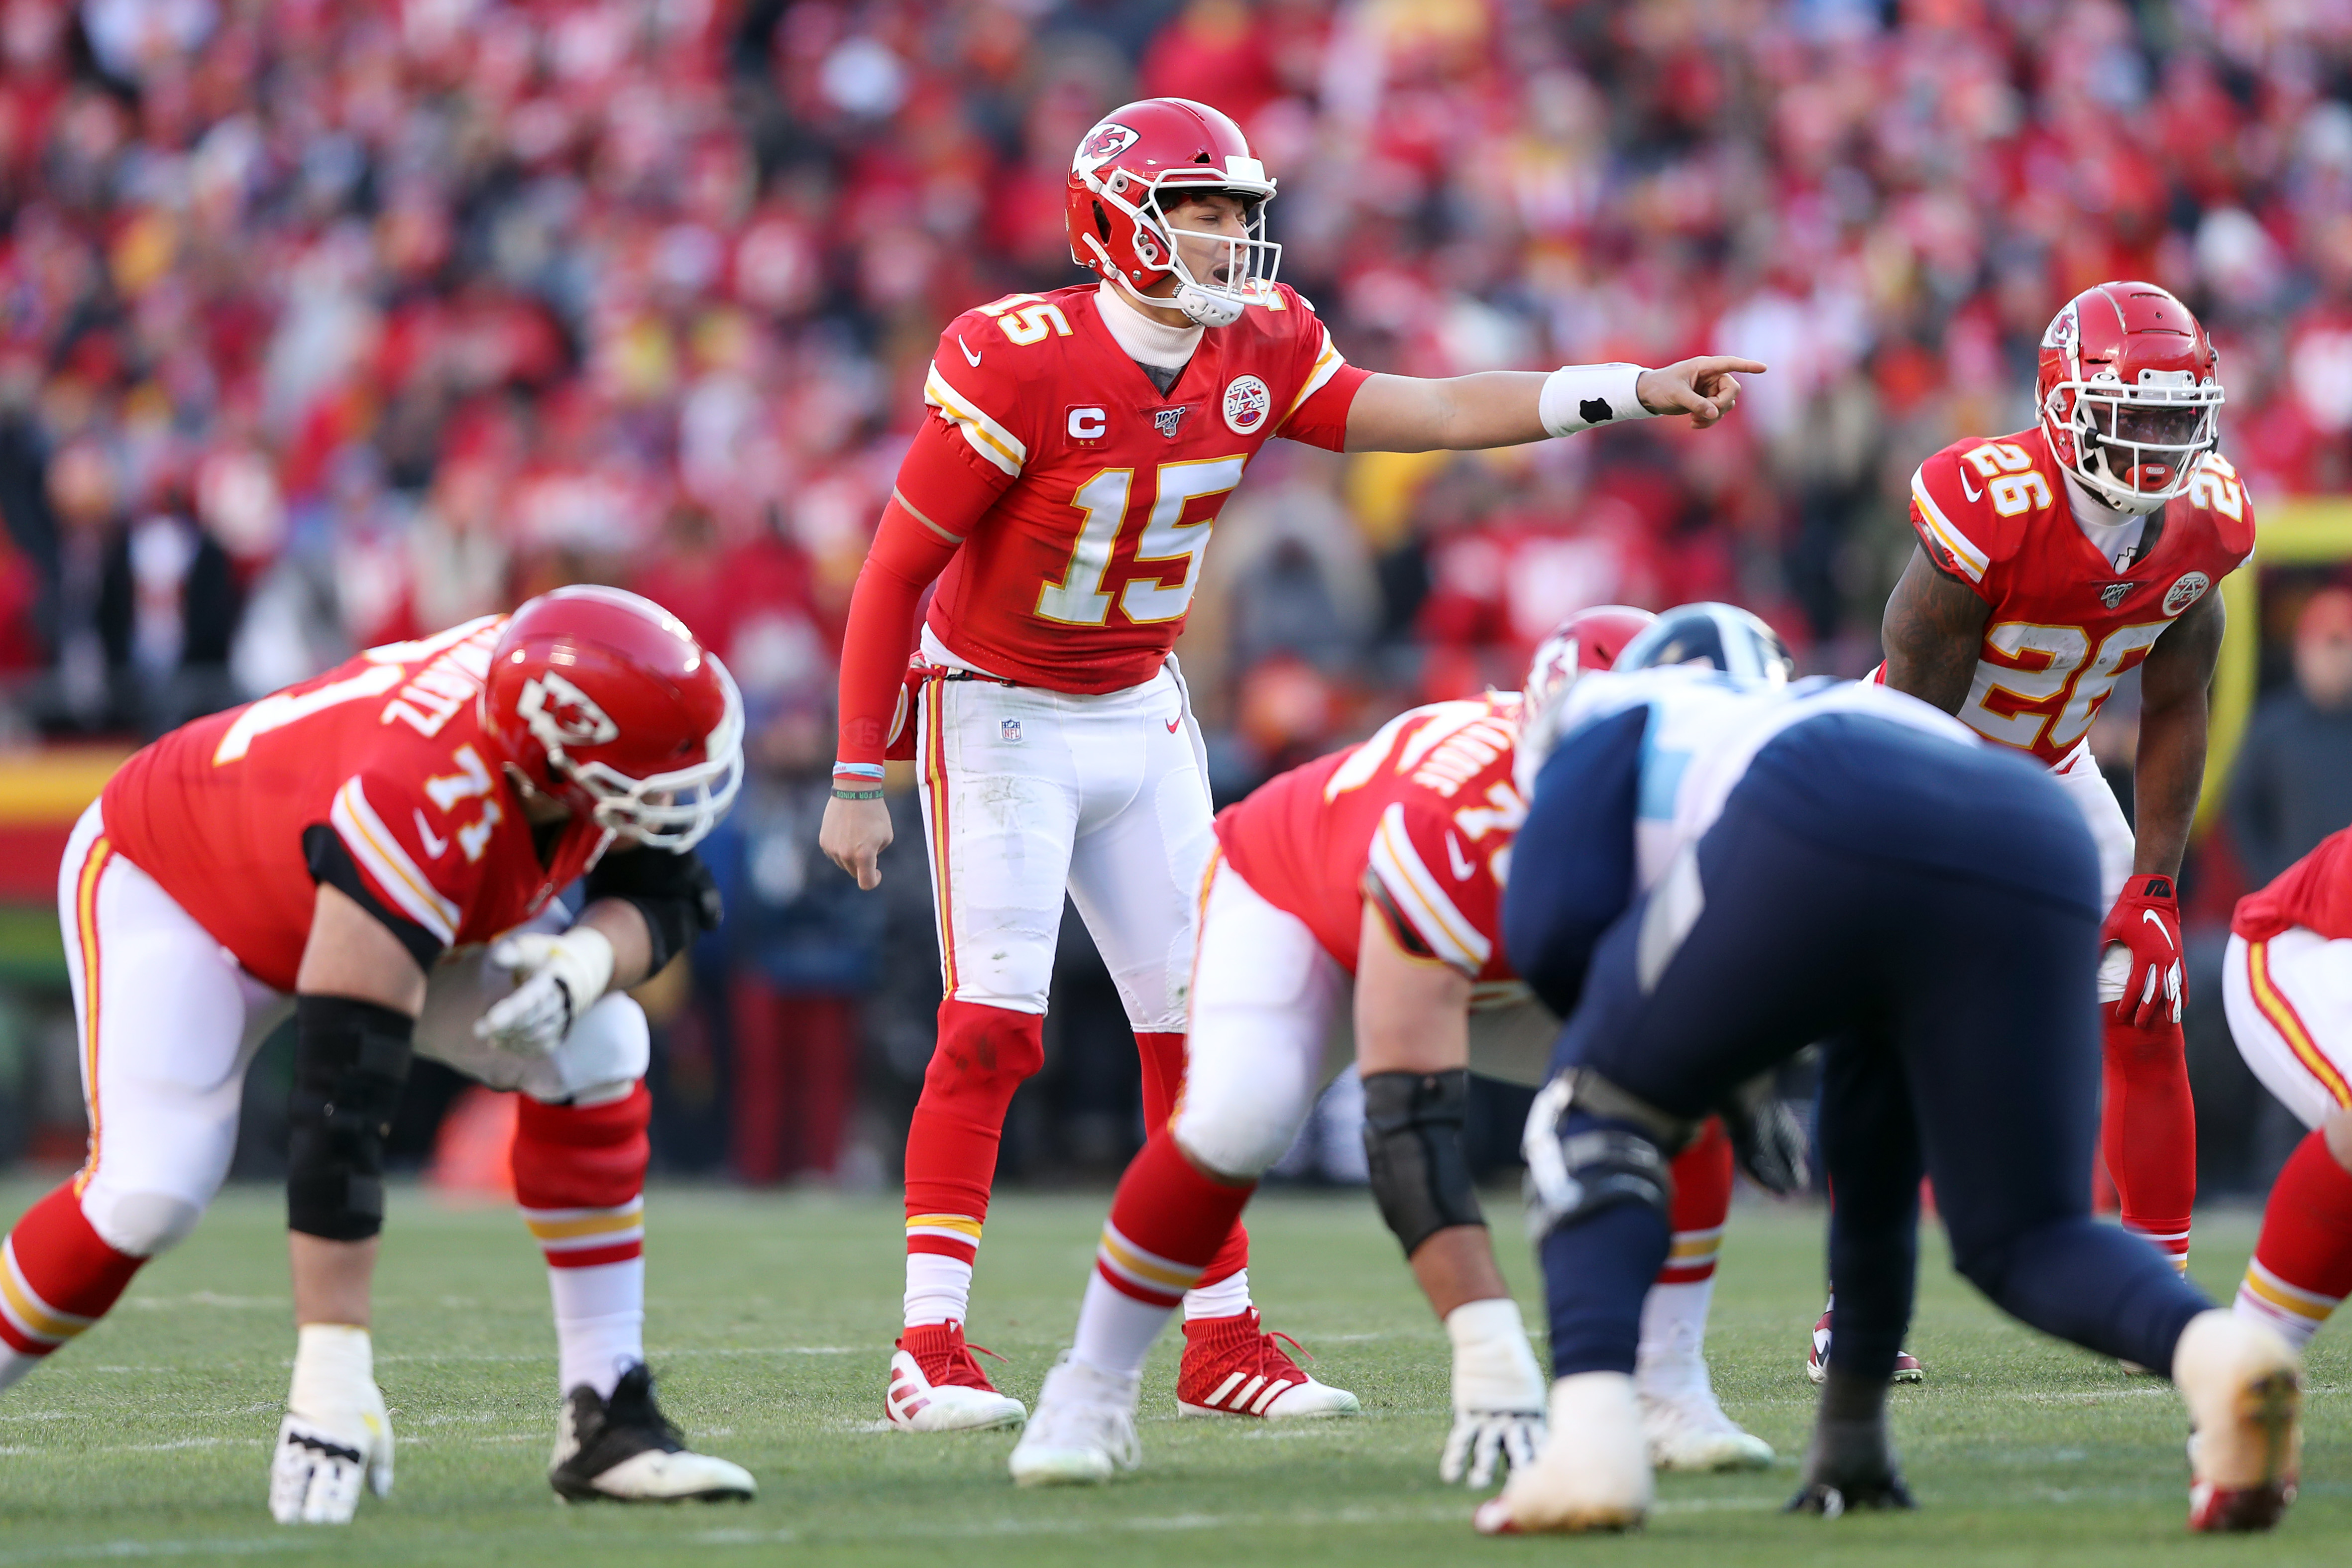 Patrick Mahomes of the Kansas City Chiefs gestures at the line in the first half against the Tennessee Titans in the AFC Championship Game at Arrowhead Stadium on January 19, 2020 in Kansas City, Missouri.